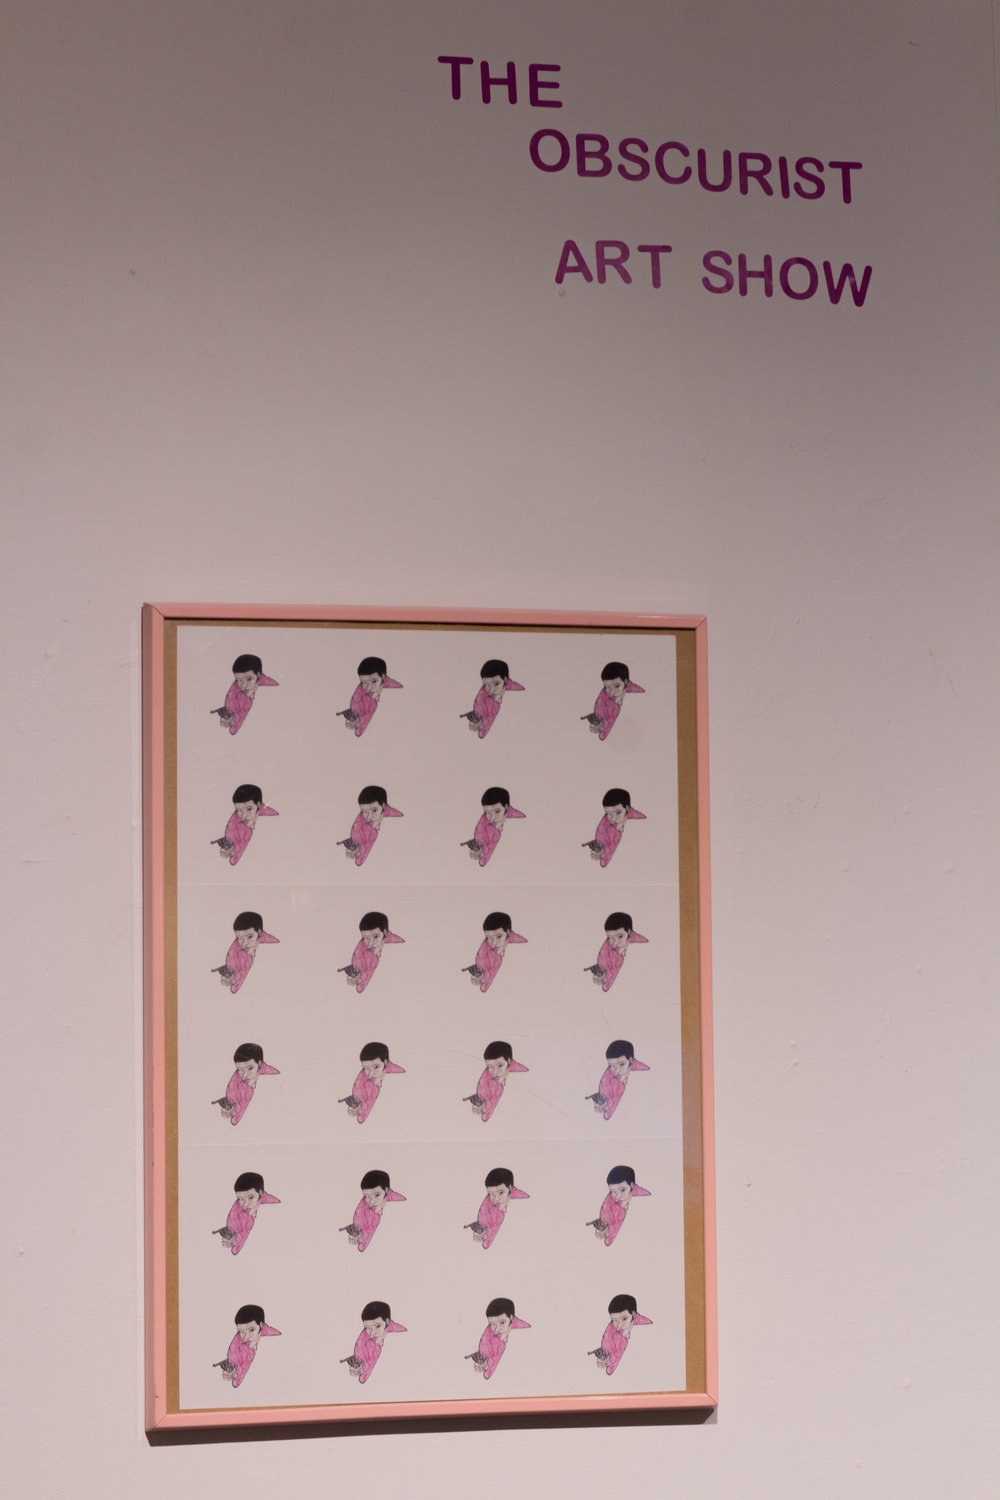 OBSCURIST SHOW 1 (1 of 2).JPG